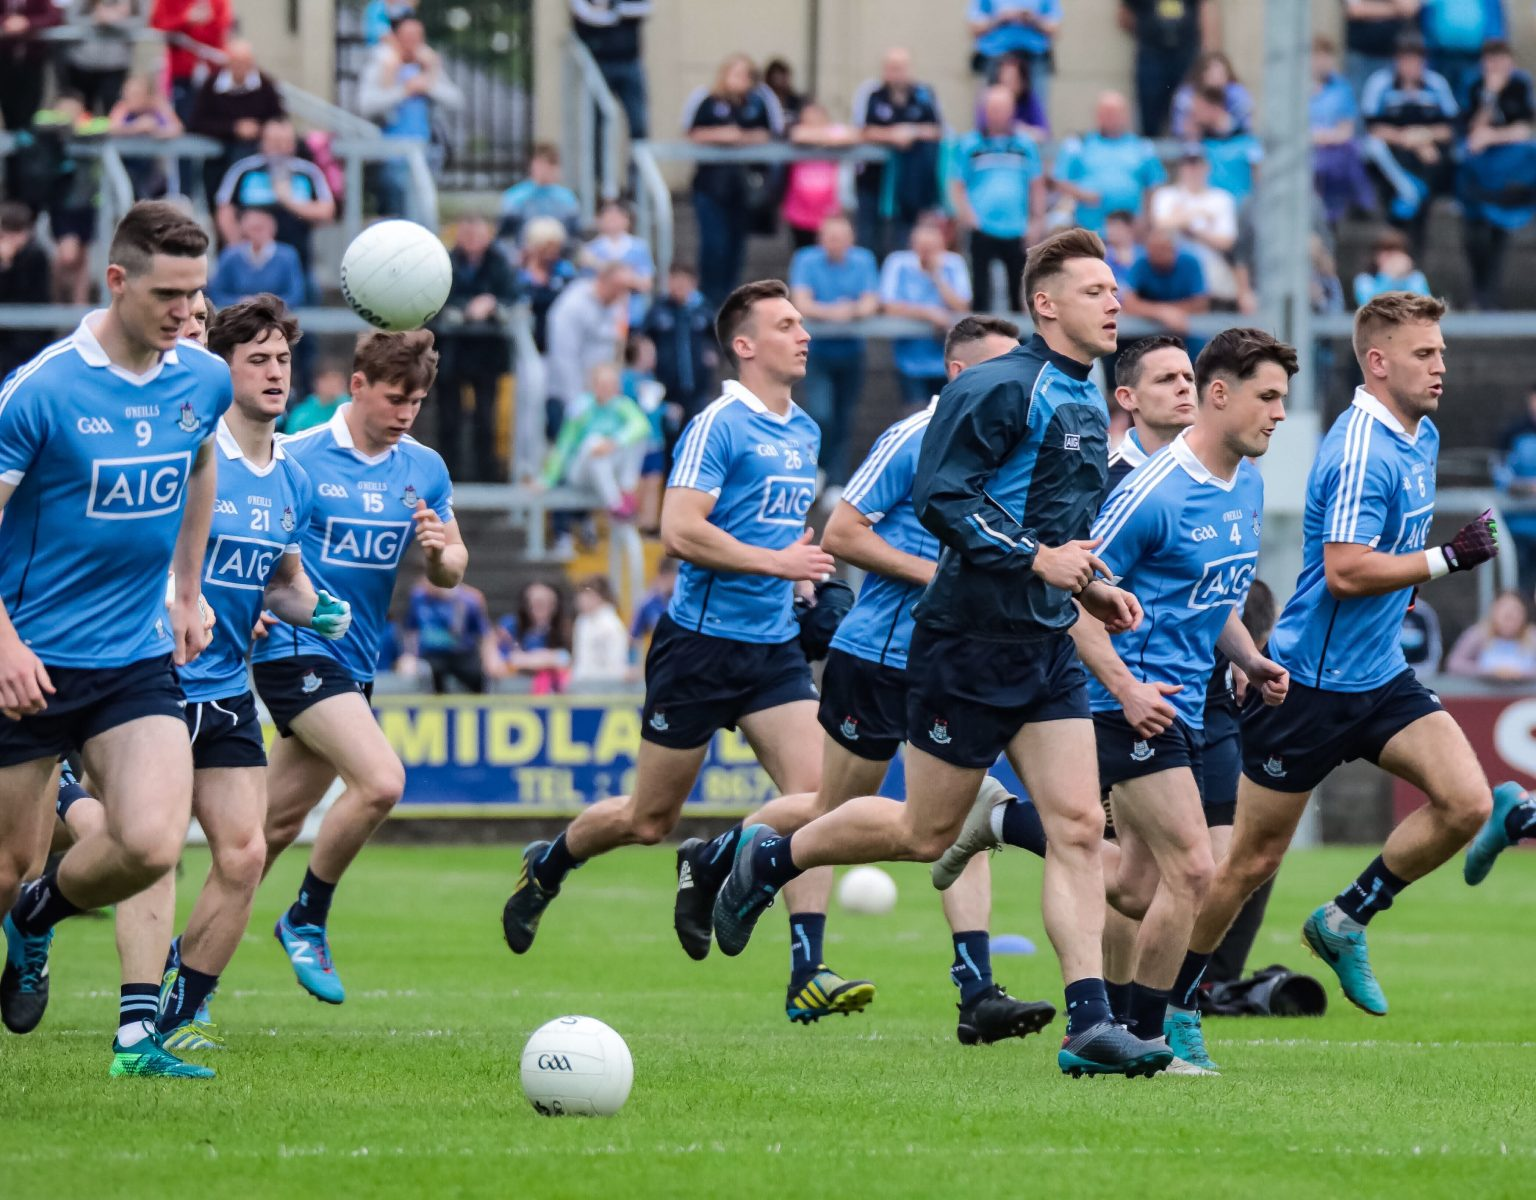 2018 All Ireland Final Is Dublin's To Lose